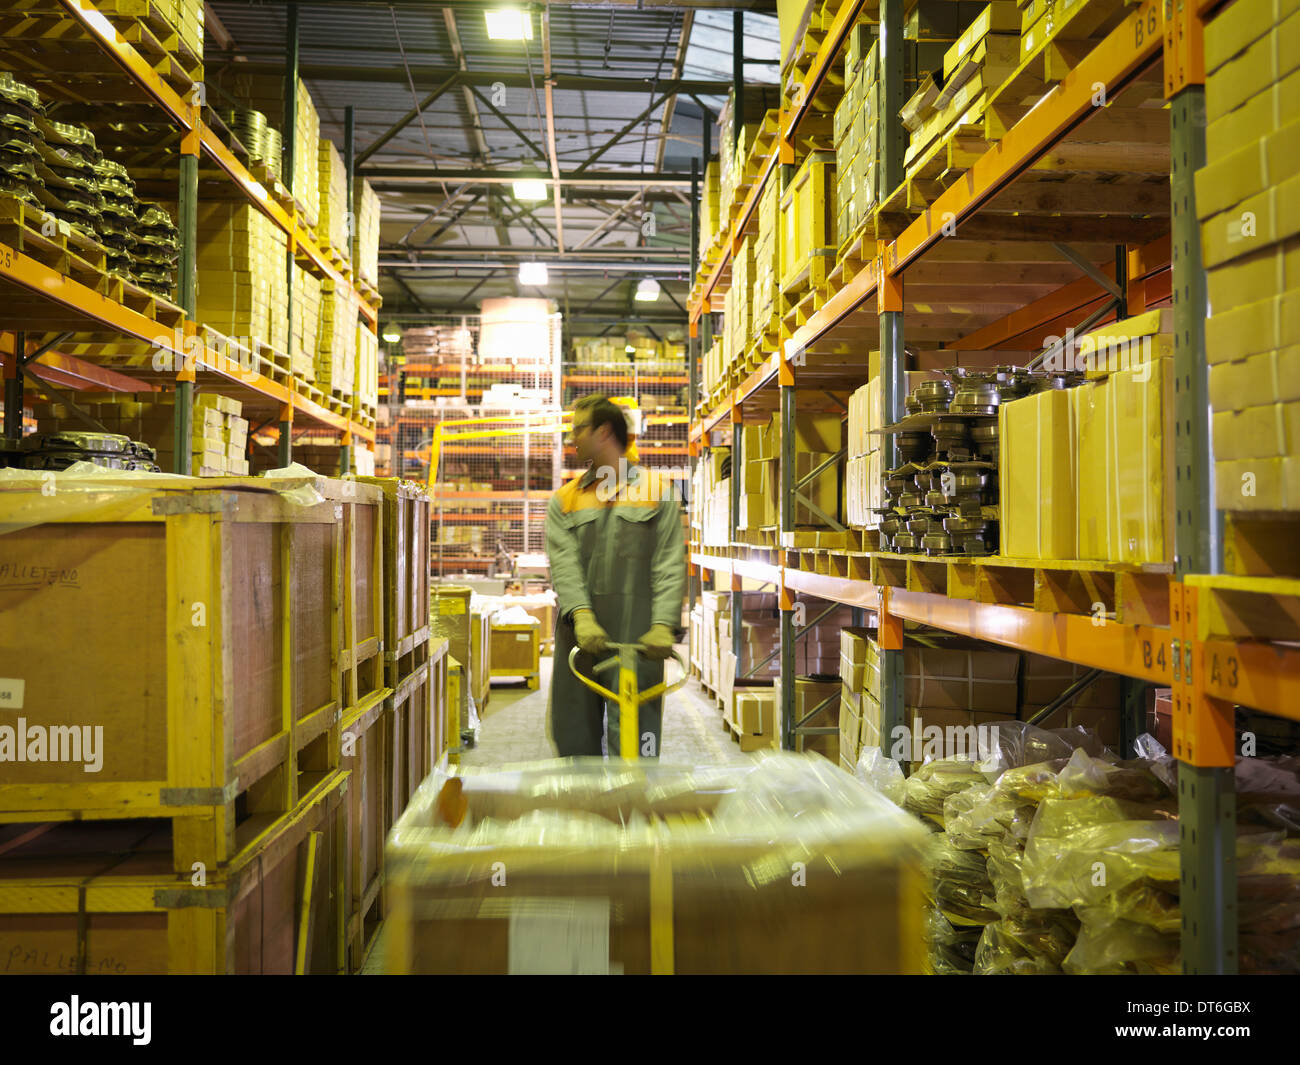 Worker in storage area of factory - Stock Image